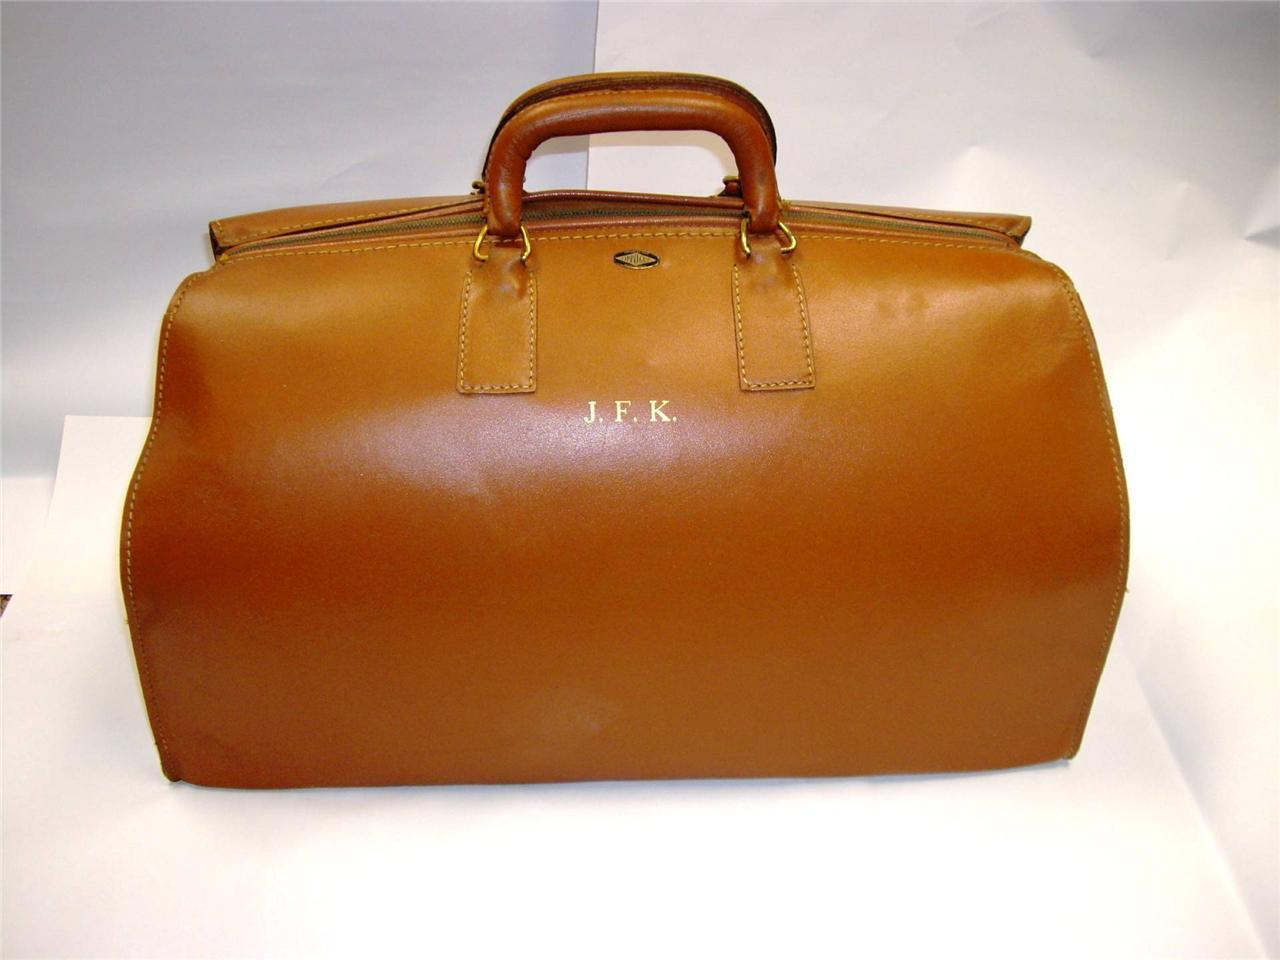 John F Kennedy Owned and Used JFK Leather Travel Bag Briefcase With Business Card